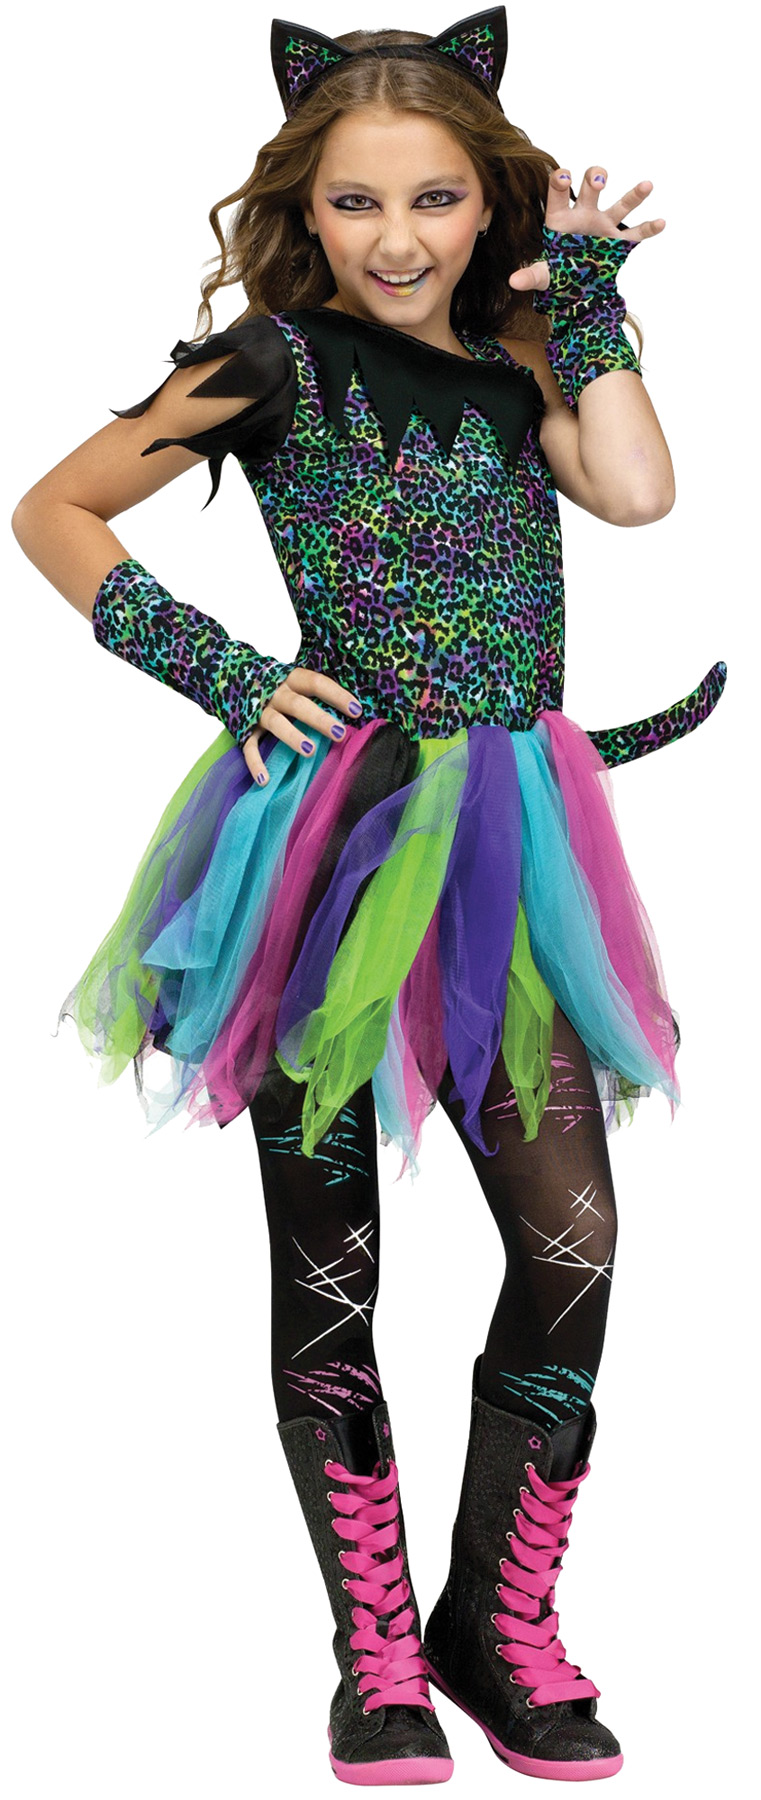 Walmart Costume For Kids Size Medum That Are Rock Stars